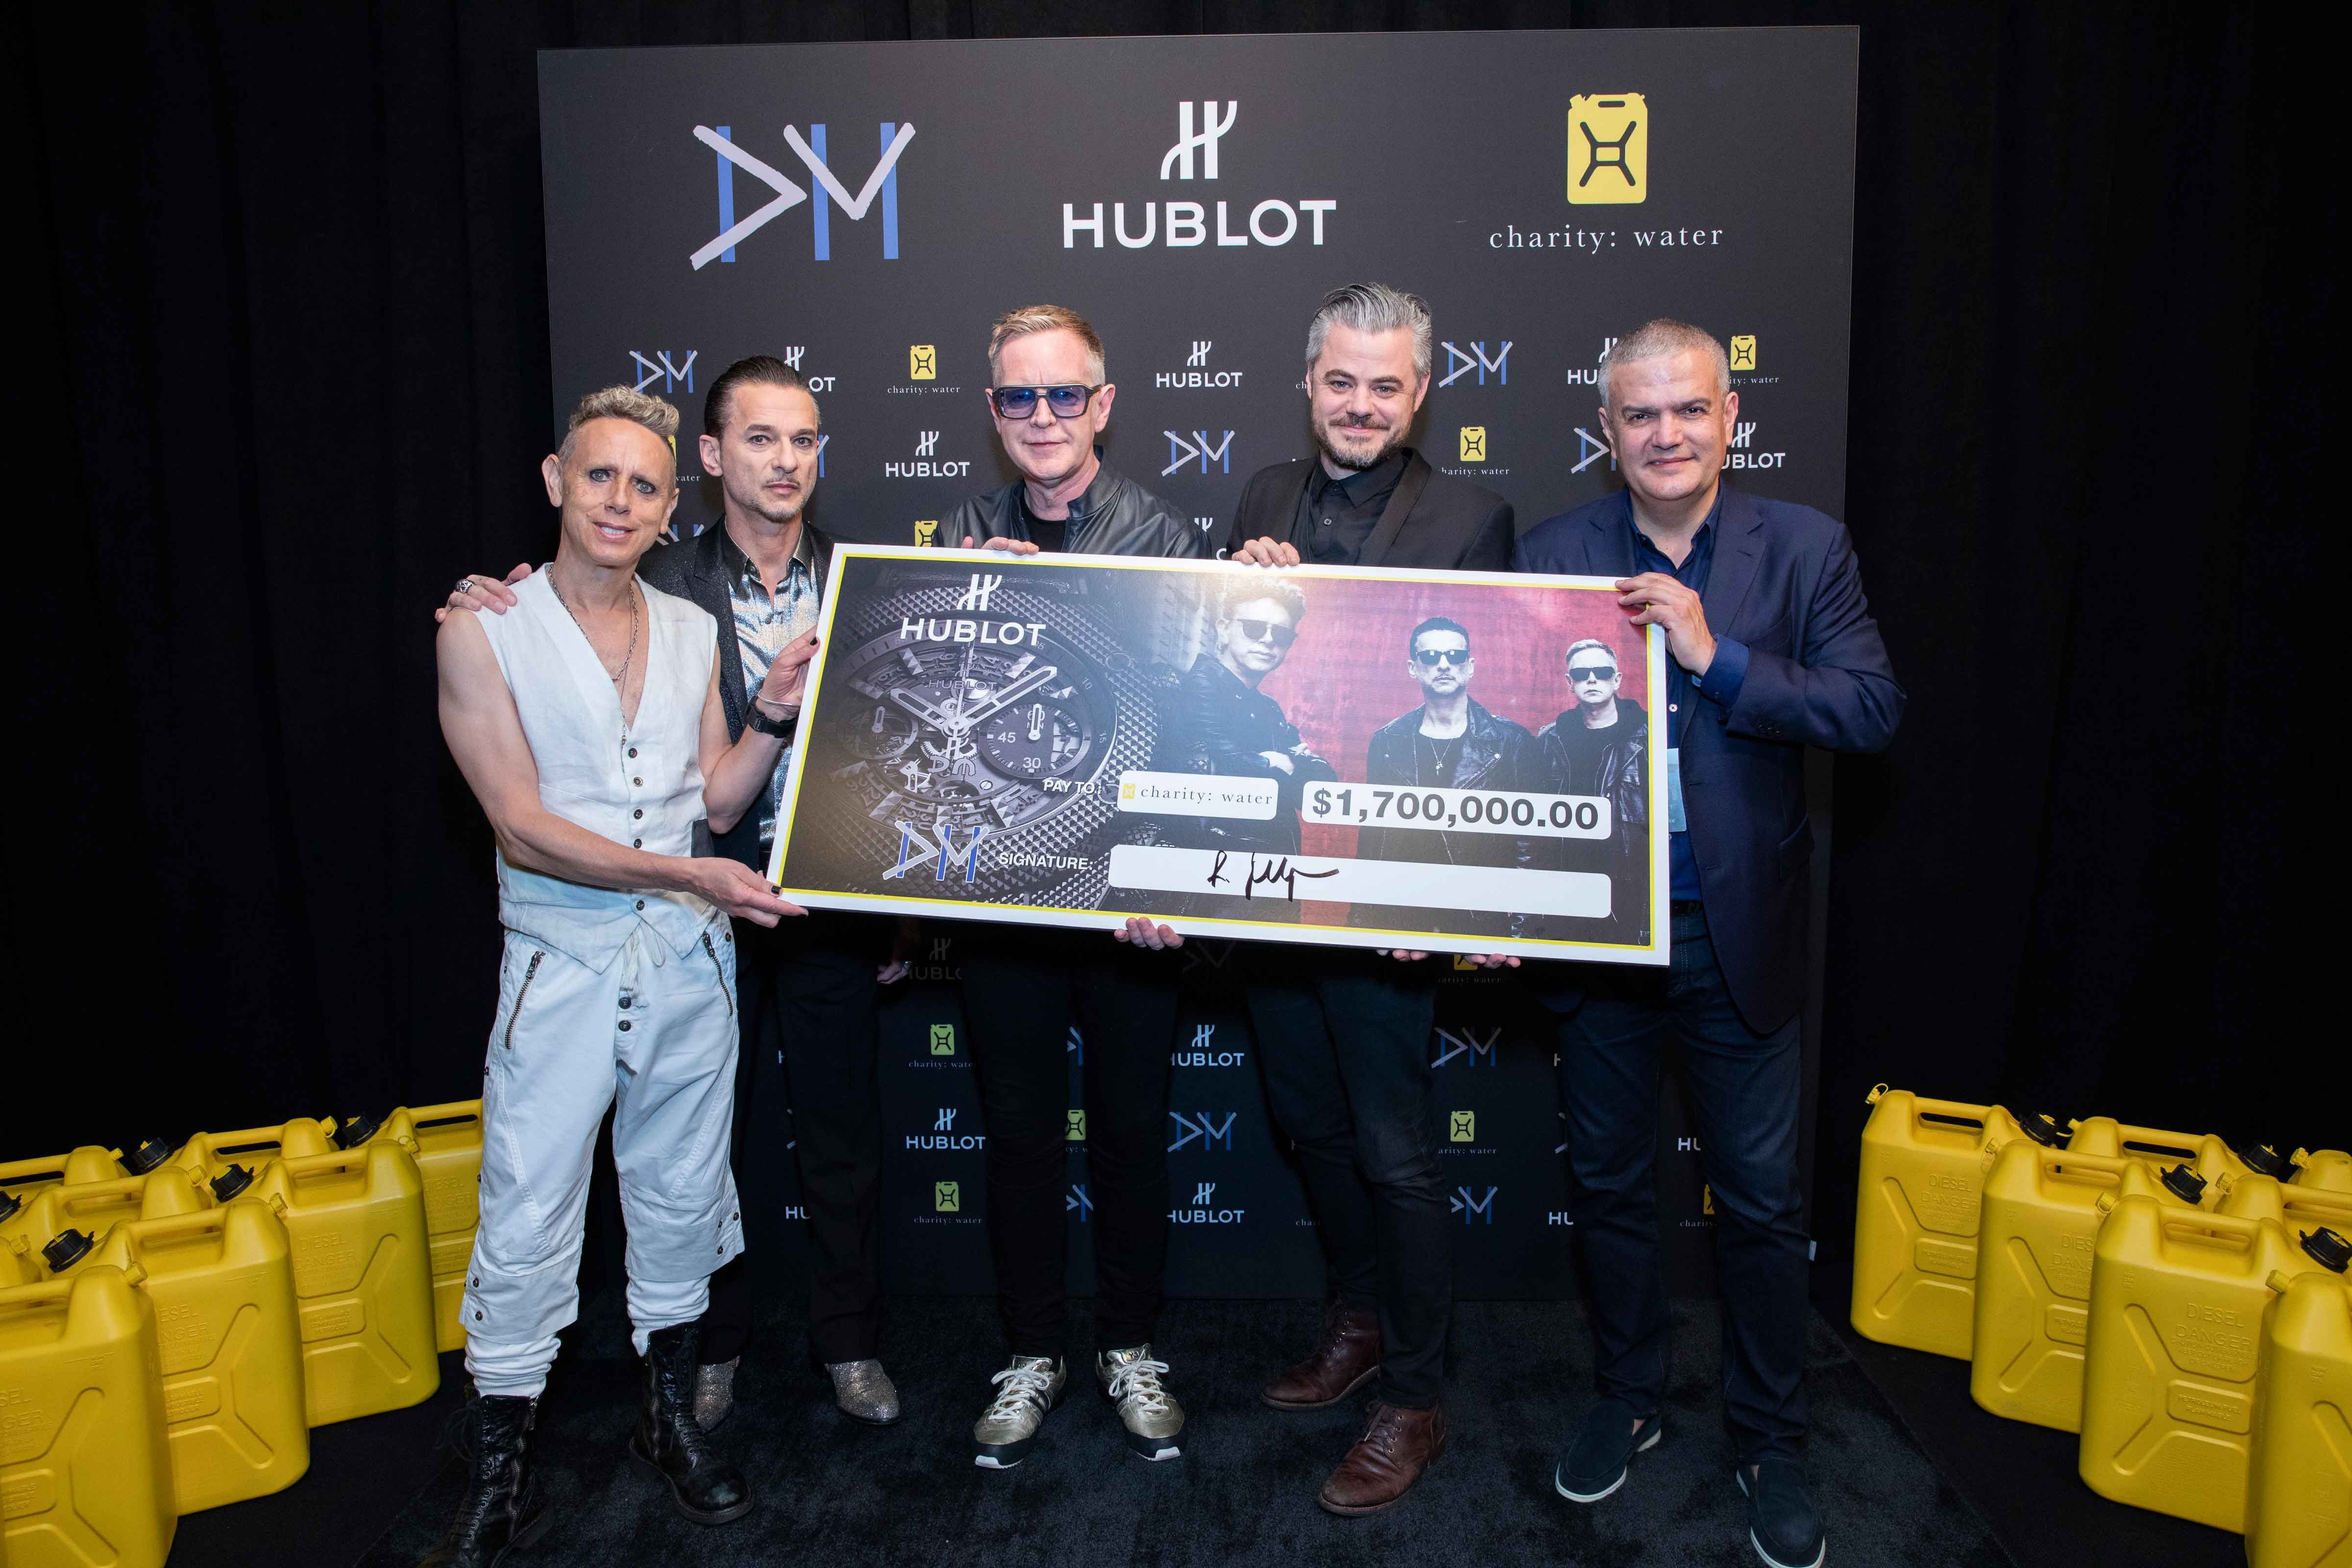 Hublot-Depeche-Mode-Charity-Water, Charity Water